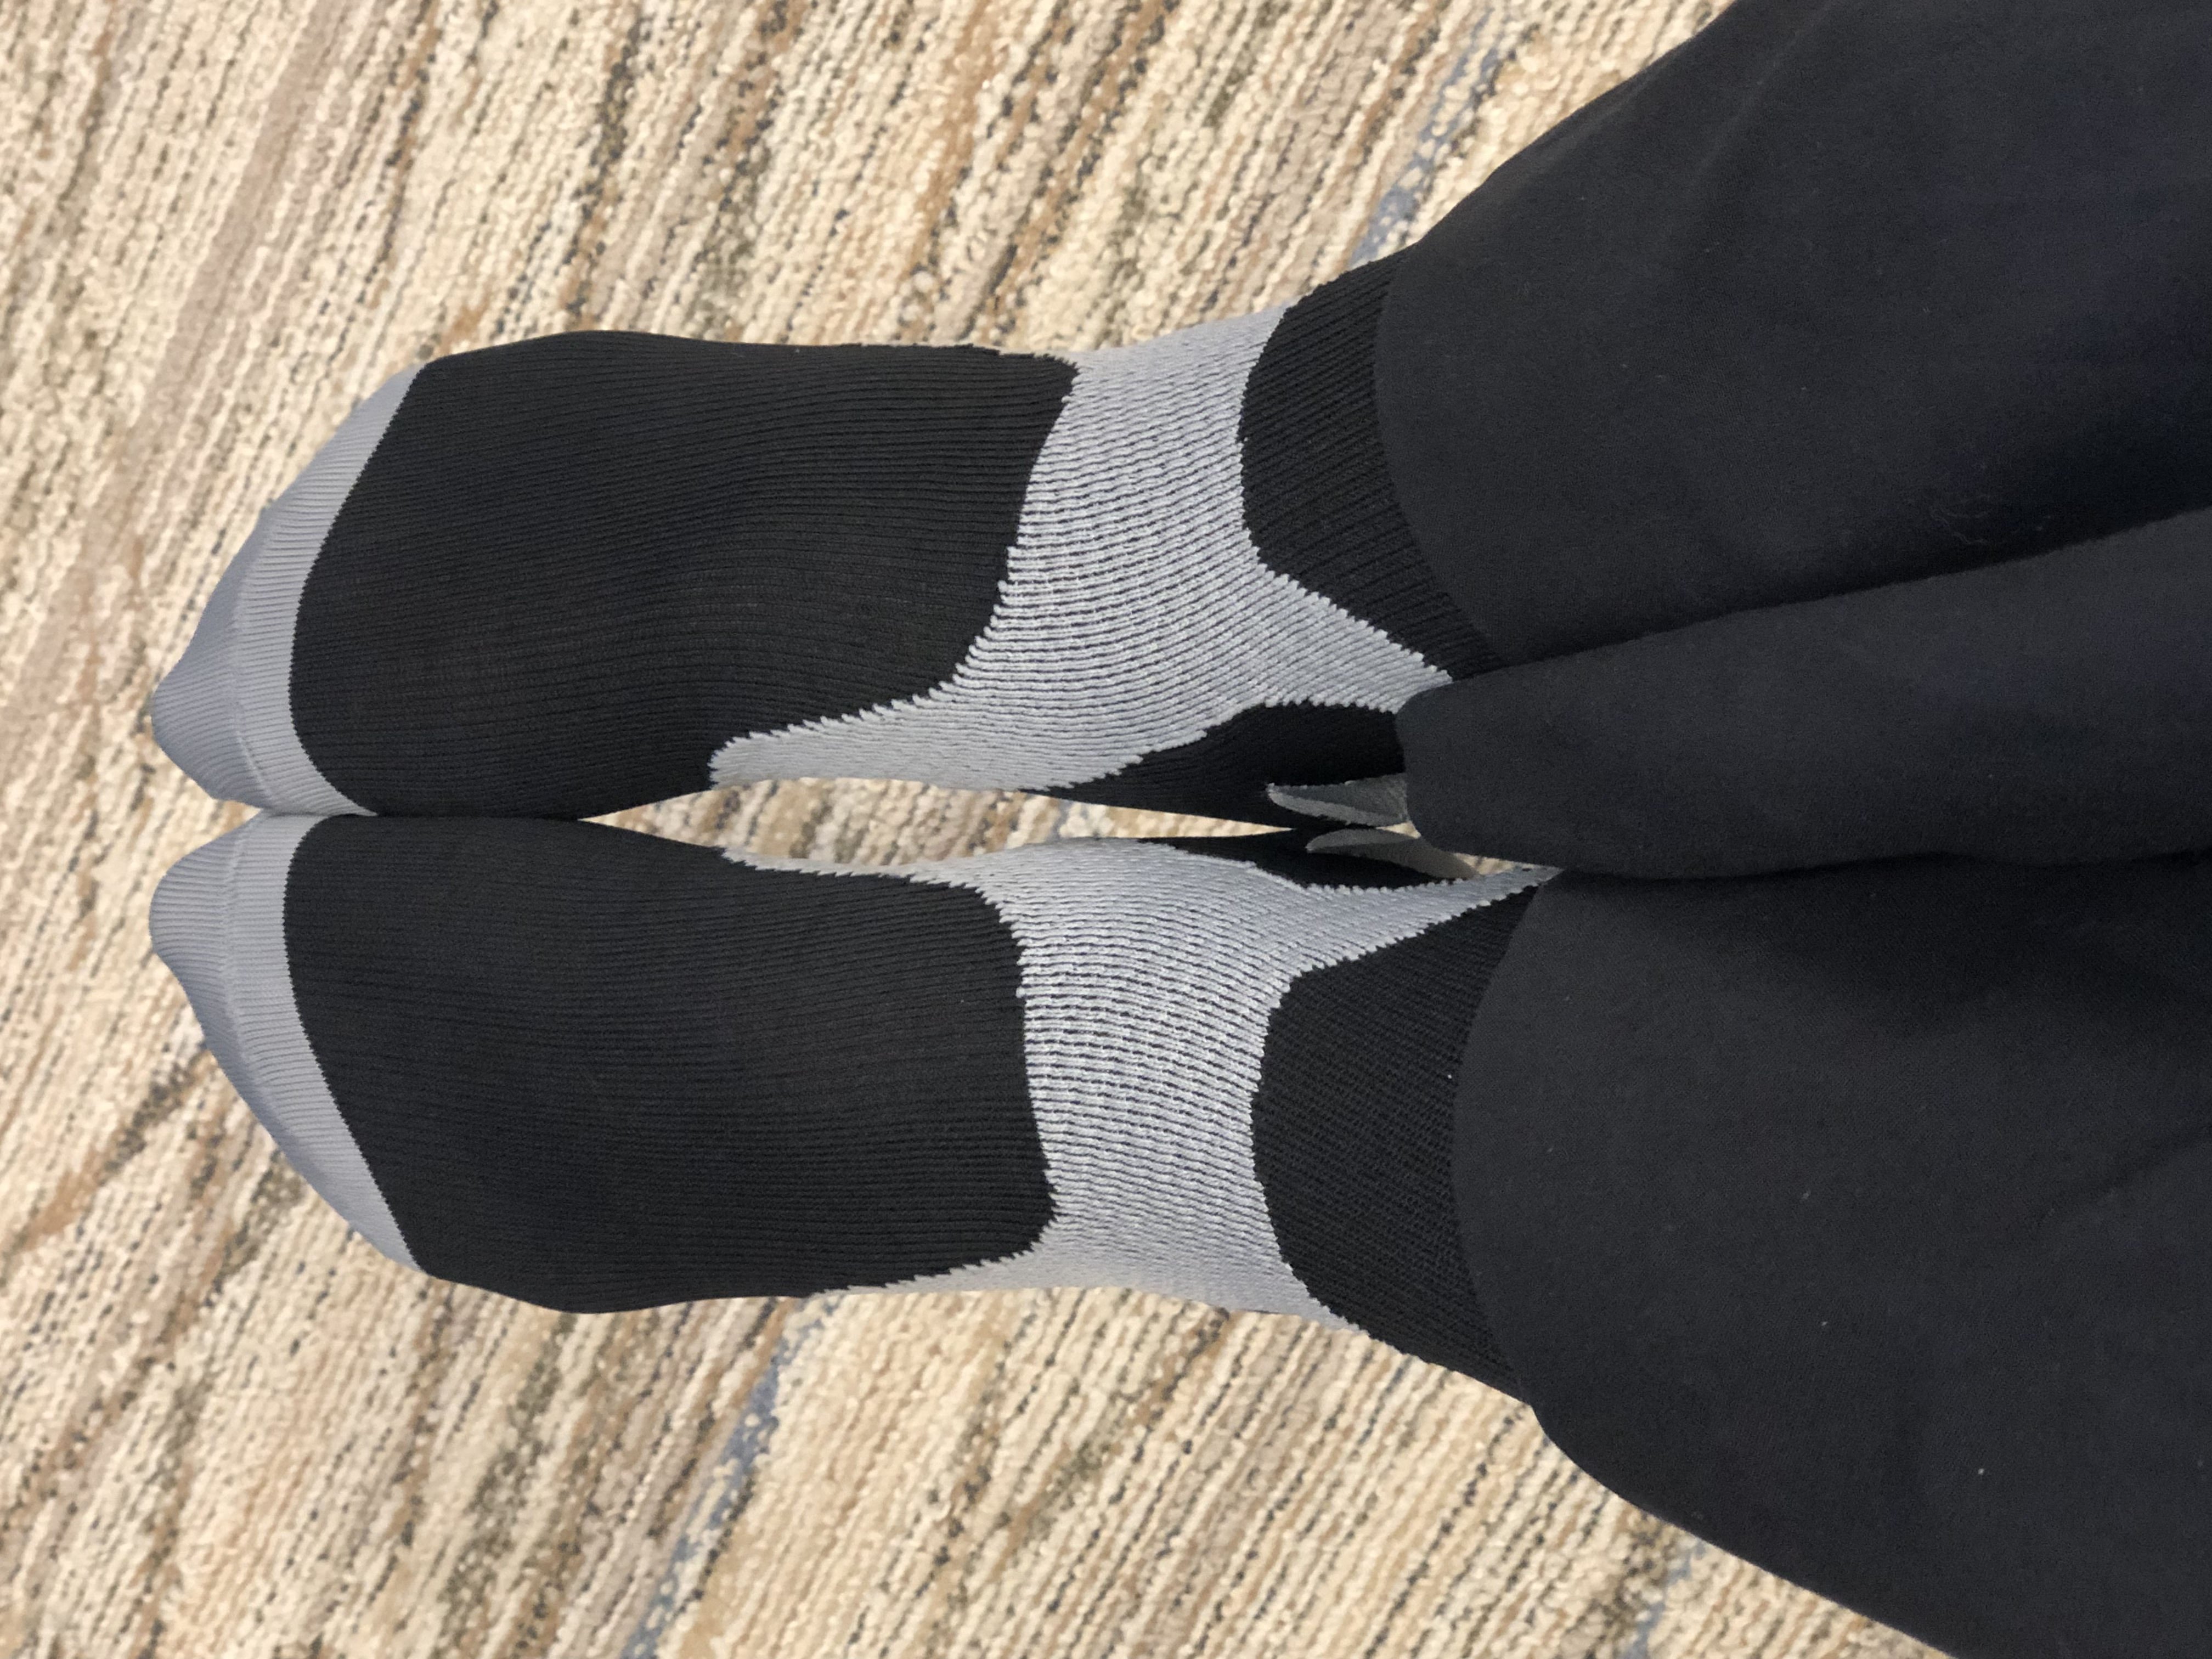 How painful is it to fly in economy to Australia? Swollen ankles can make it quite uncomfortable for days, so be sure to wear compression socks on all your long-haul flights.